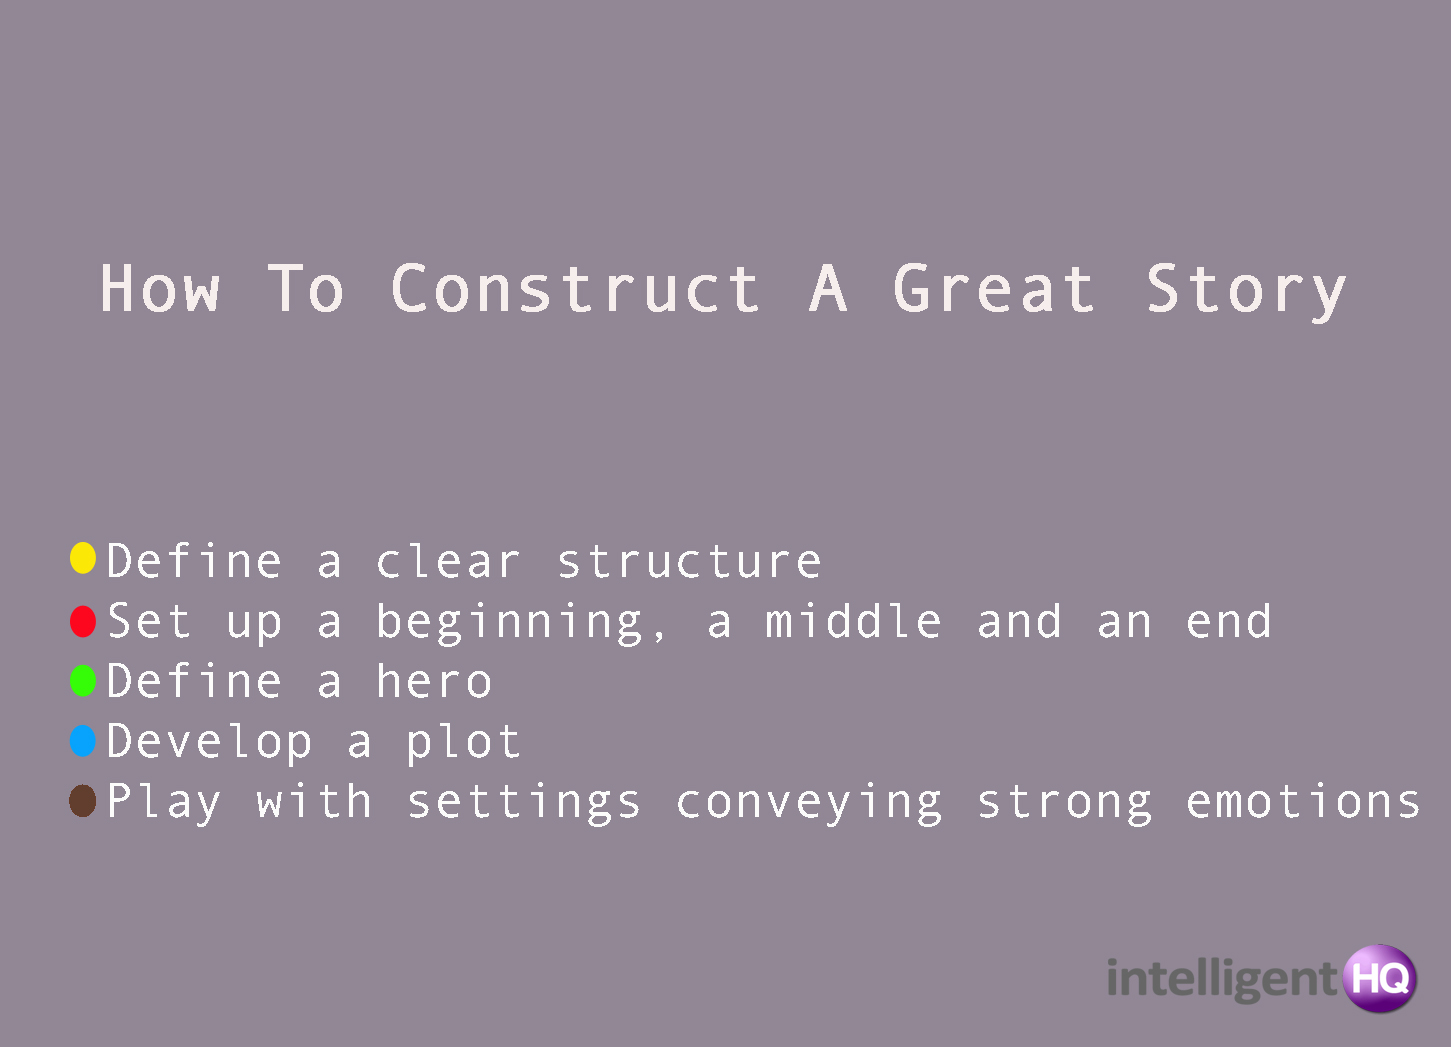 How to construct a great story Intelligenthq